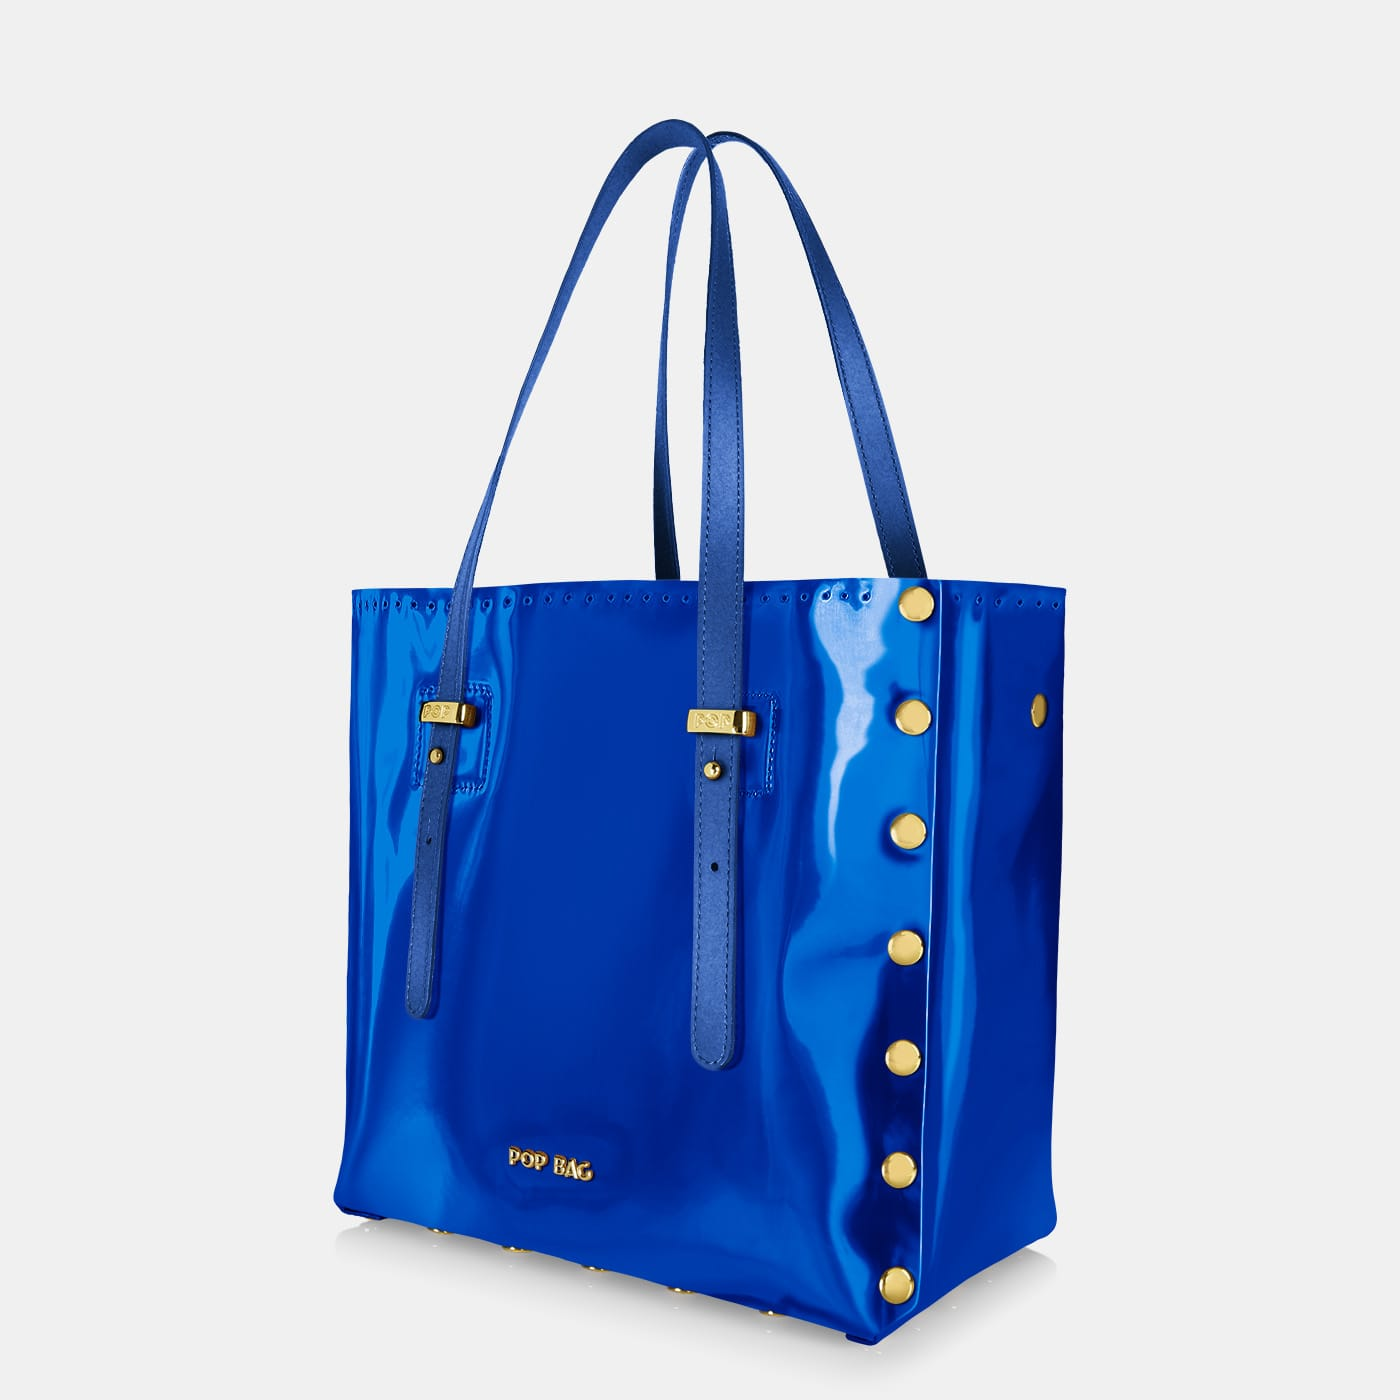 Pop Aurora Bag - Electric Blue Iridescent - Medium - Side View